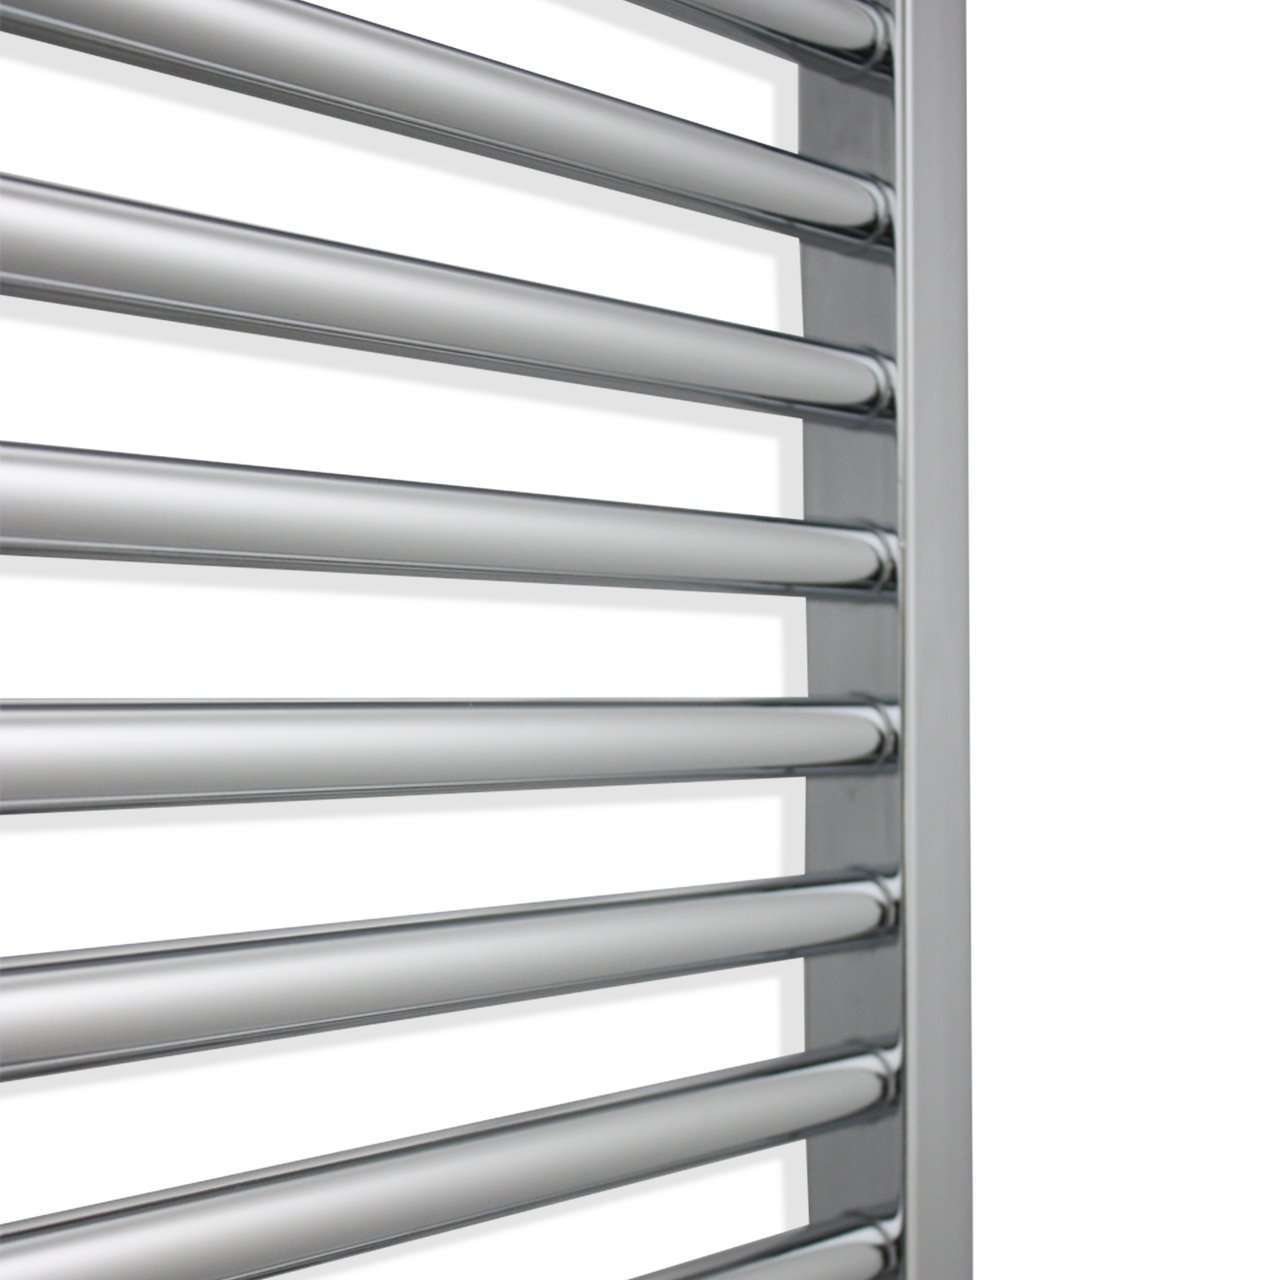 750mm Wide 600mm High Flat Chrome Heated Towel Rail Radiator HTR